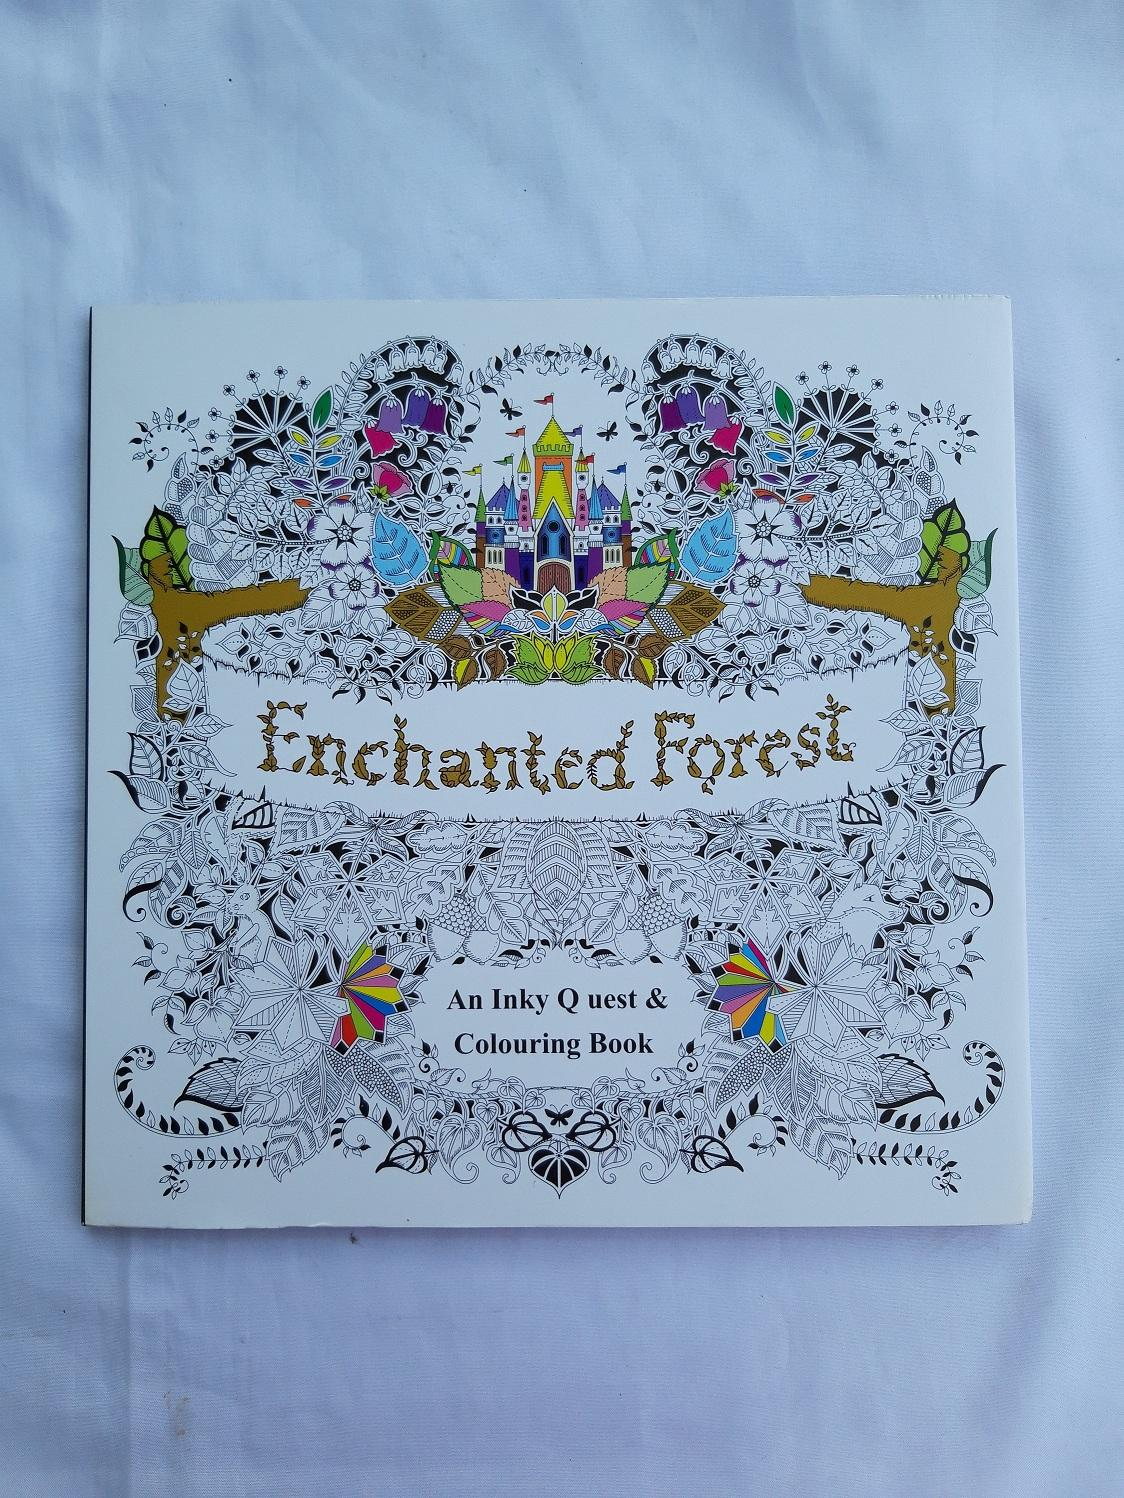 EnchantedForest Adult Coloring Book